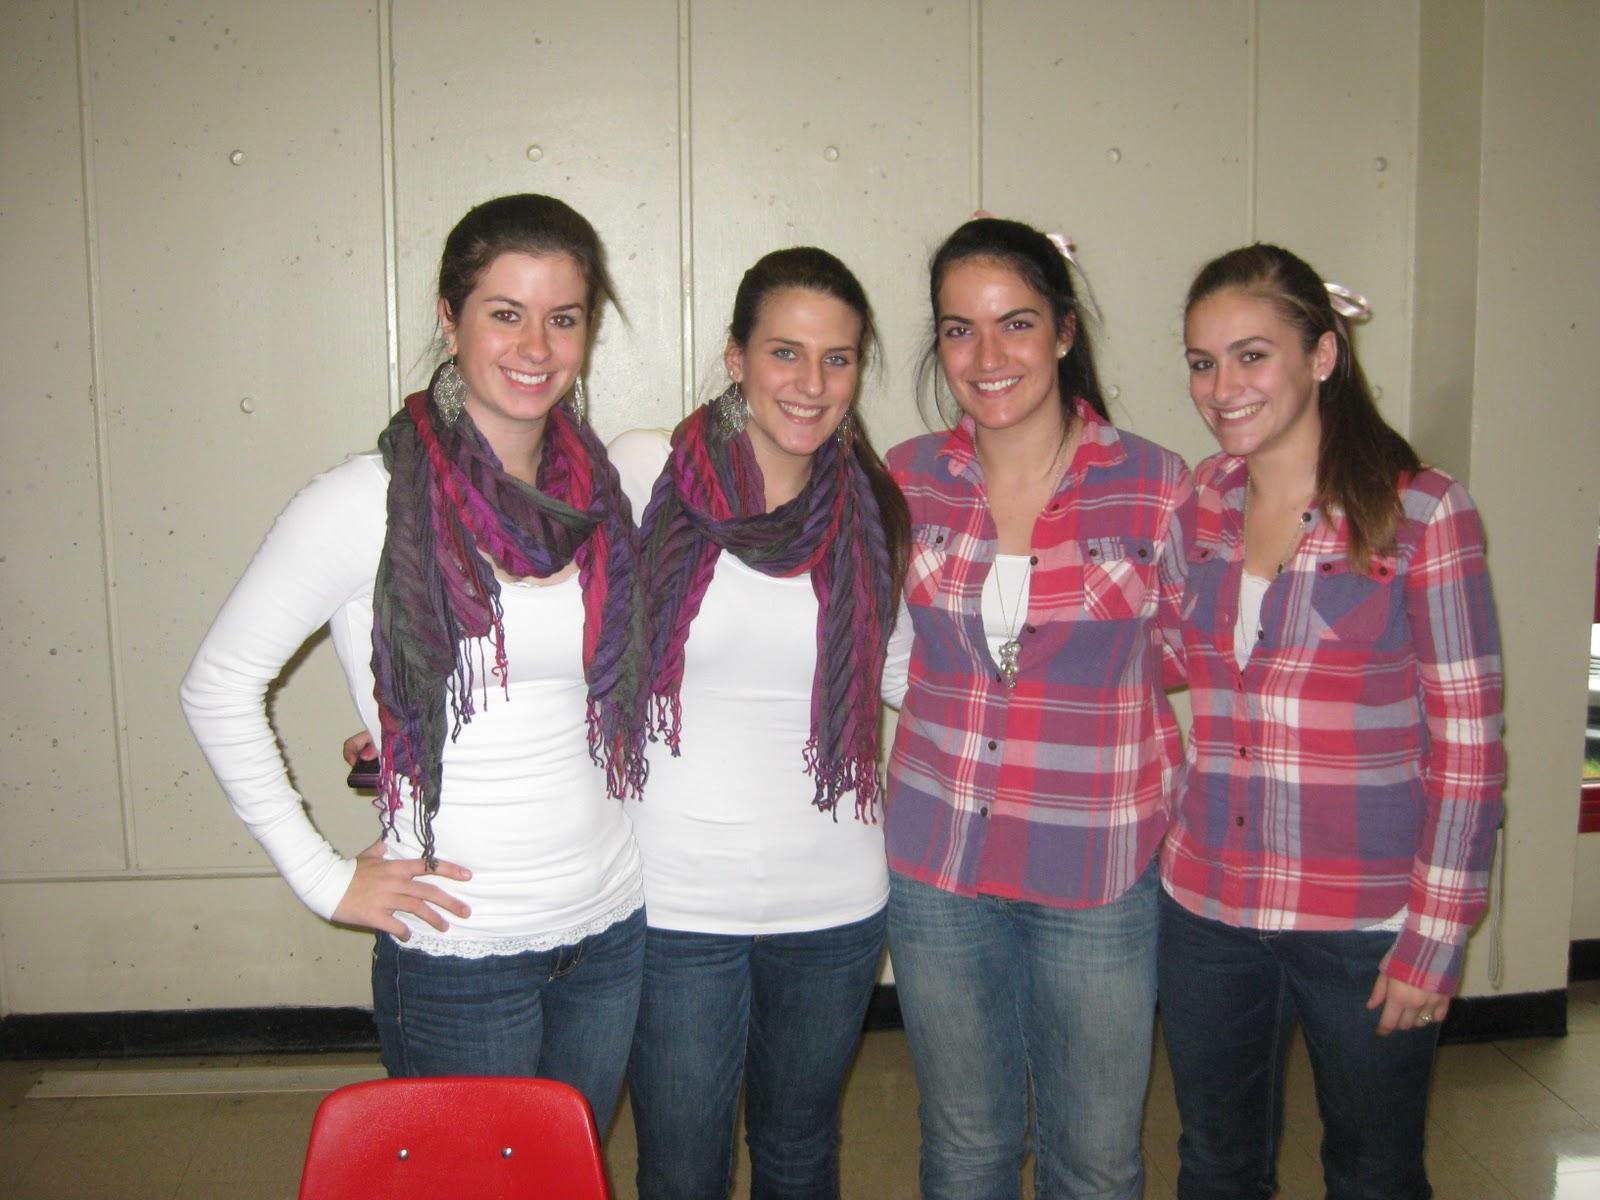 High School Twin Day Ideas Twin Day Ideas For Hig...